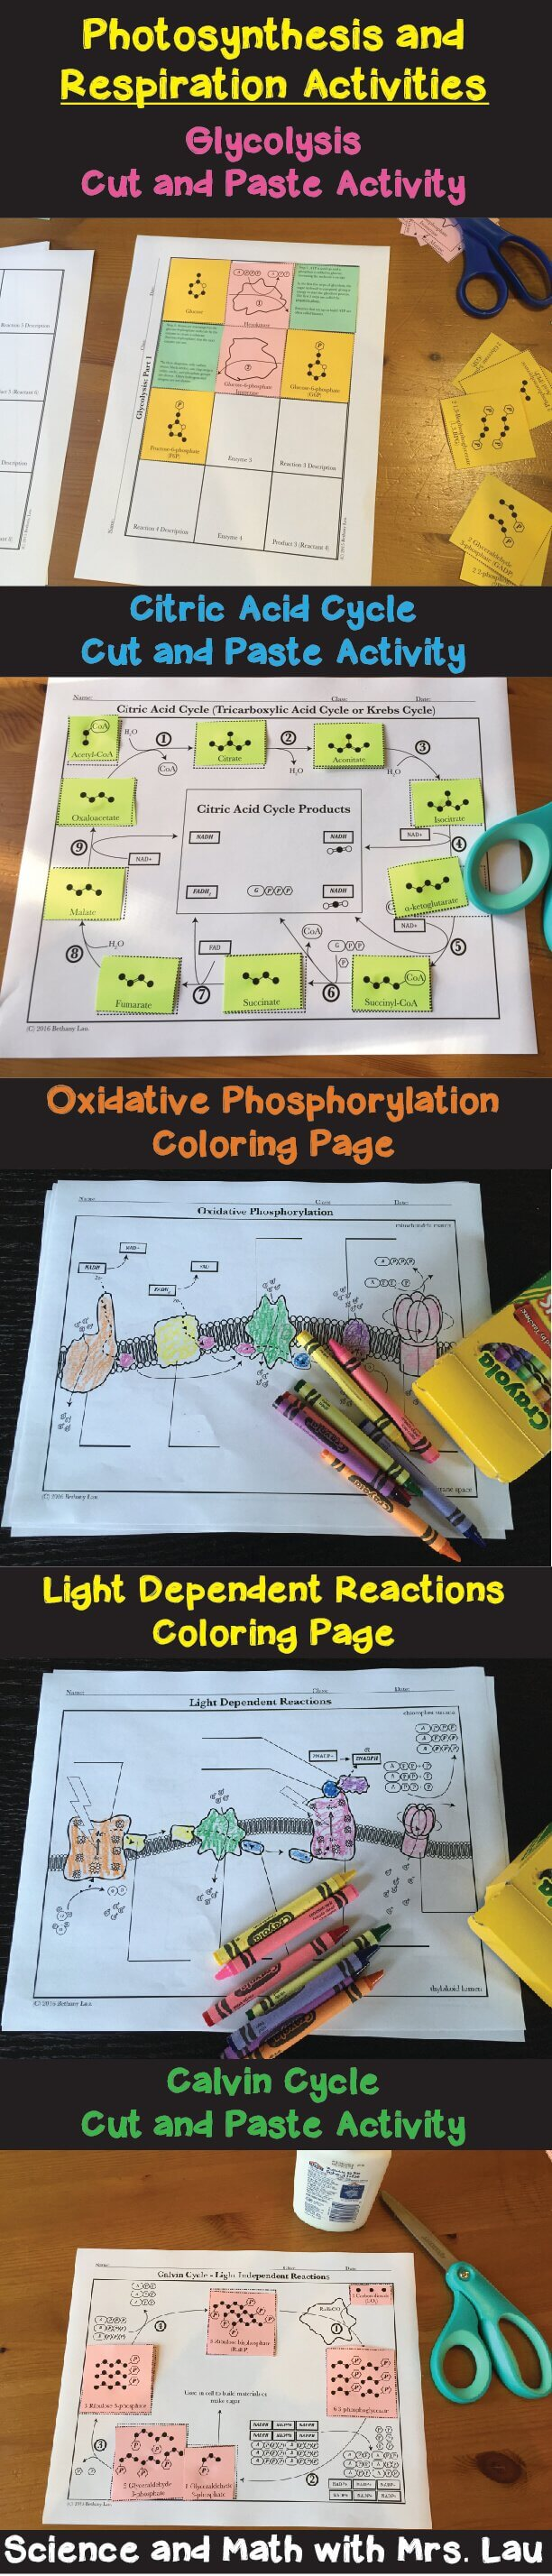 Teaching Photosynthesis and Cell Respiration with Activities